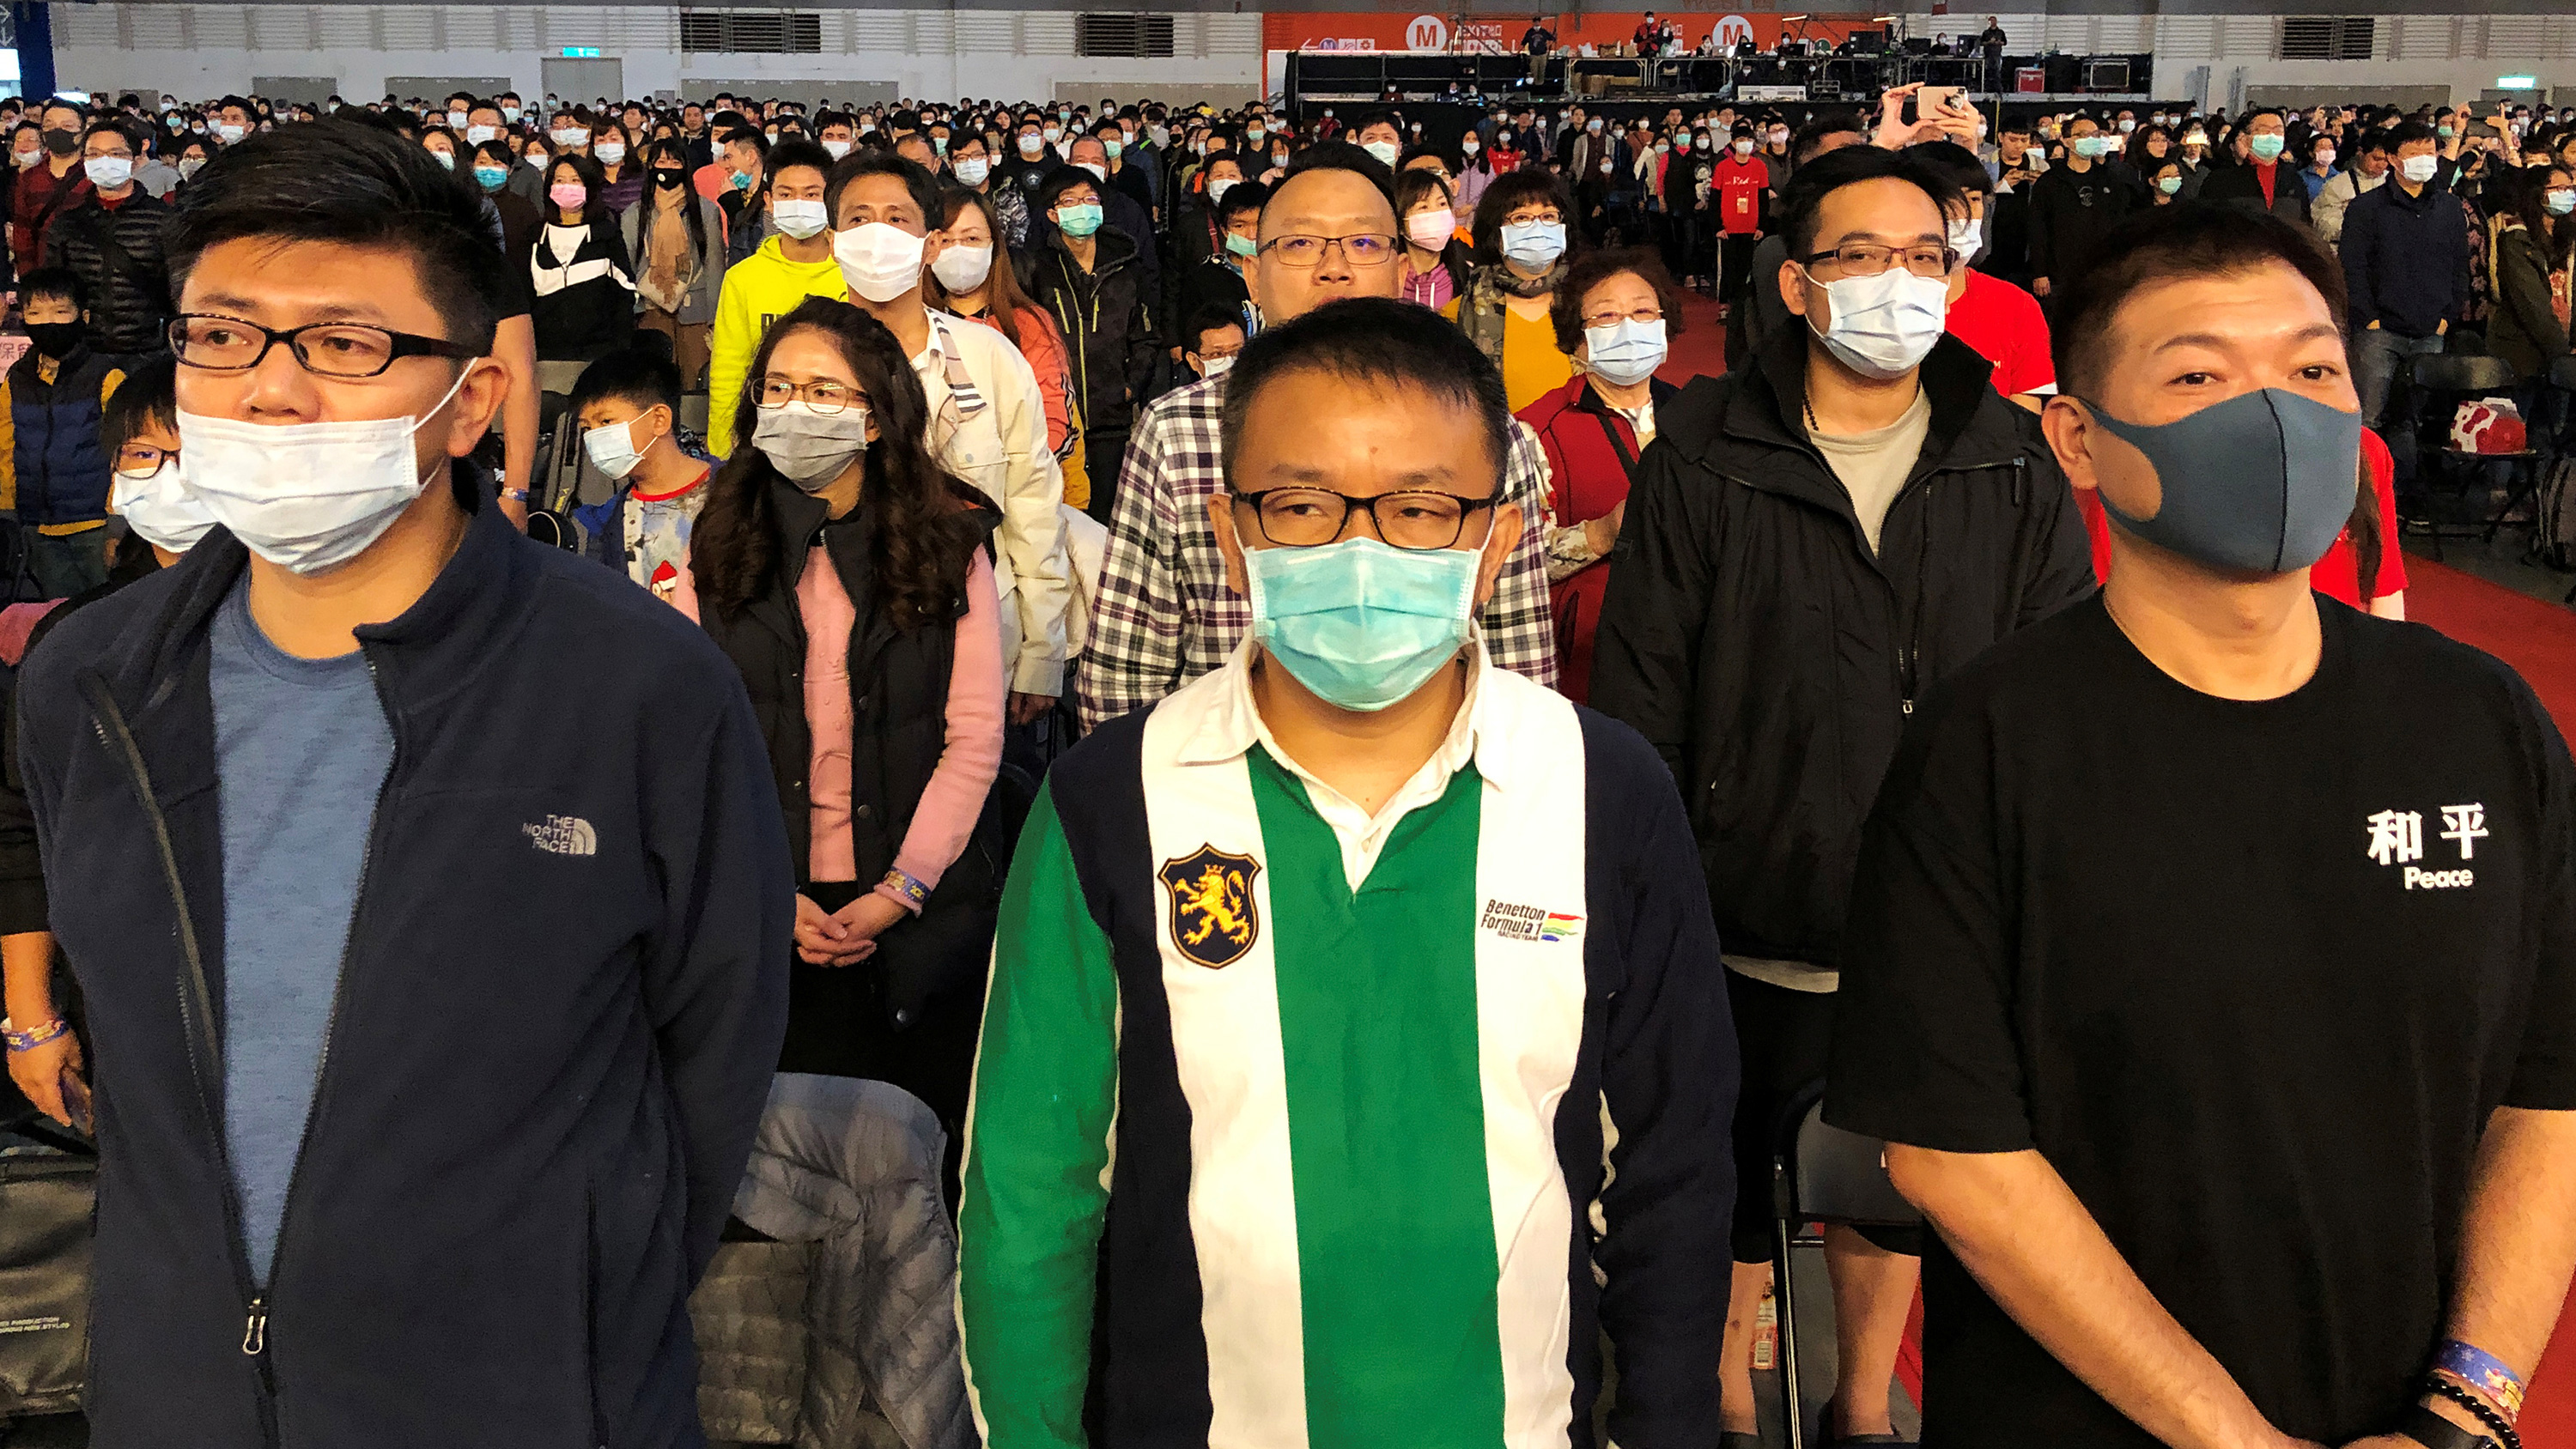 The photo shows a massive arena-like space filled with people, almost all of whom are wearing face masks.